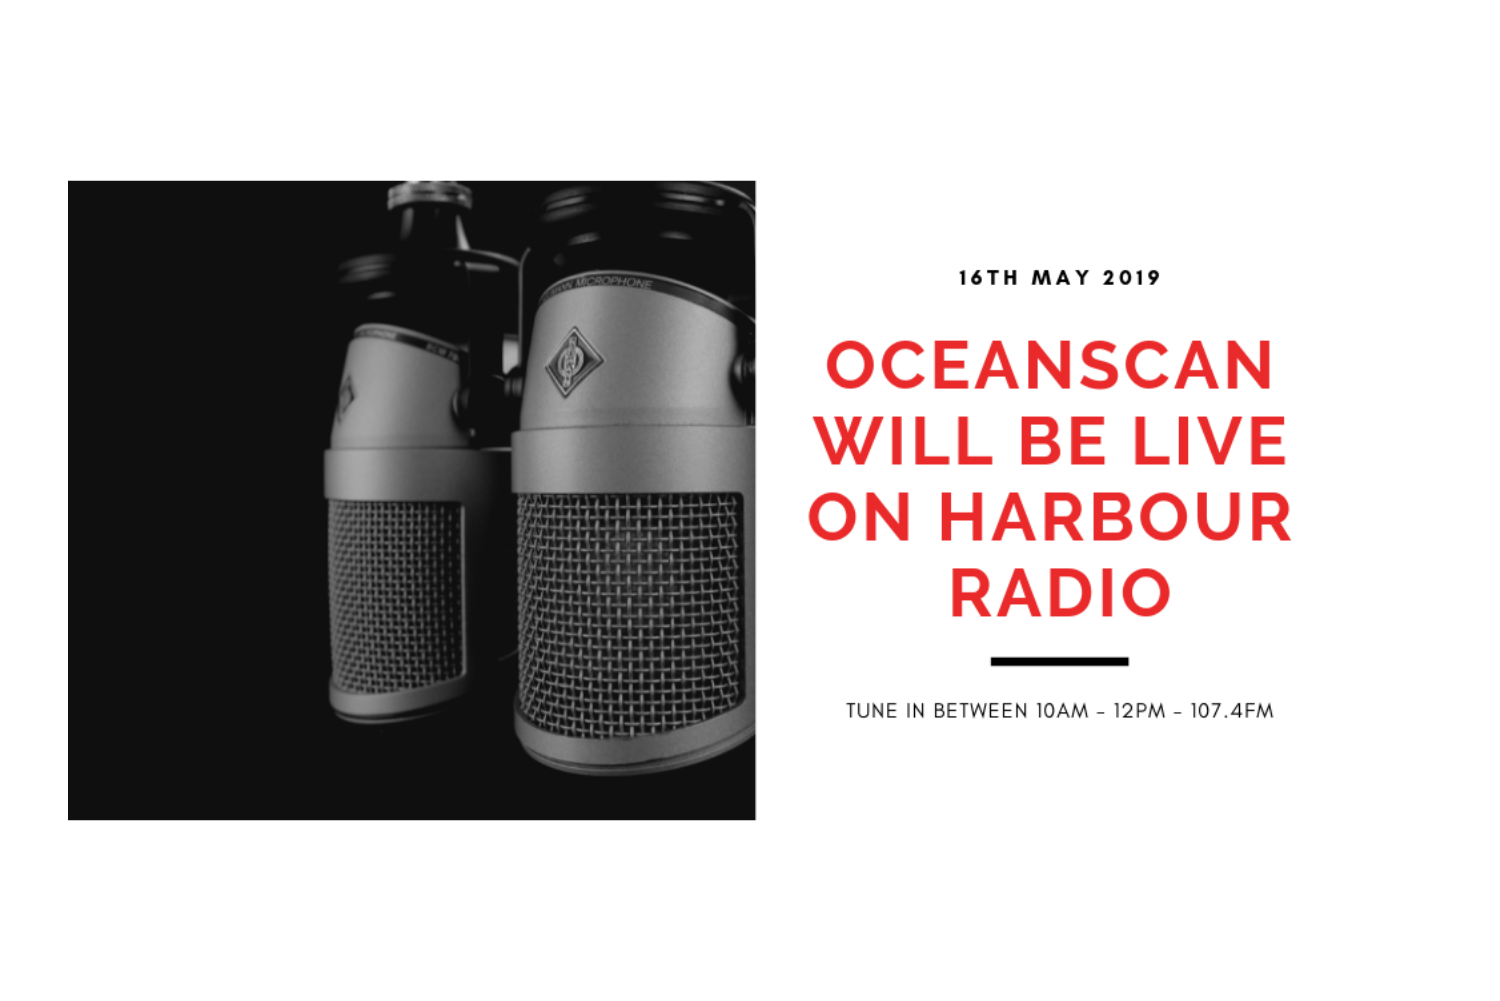 Oceanscan Personnel 10th anniversary radio campaign